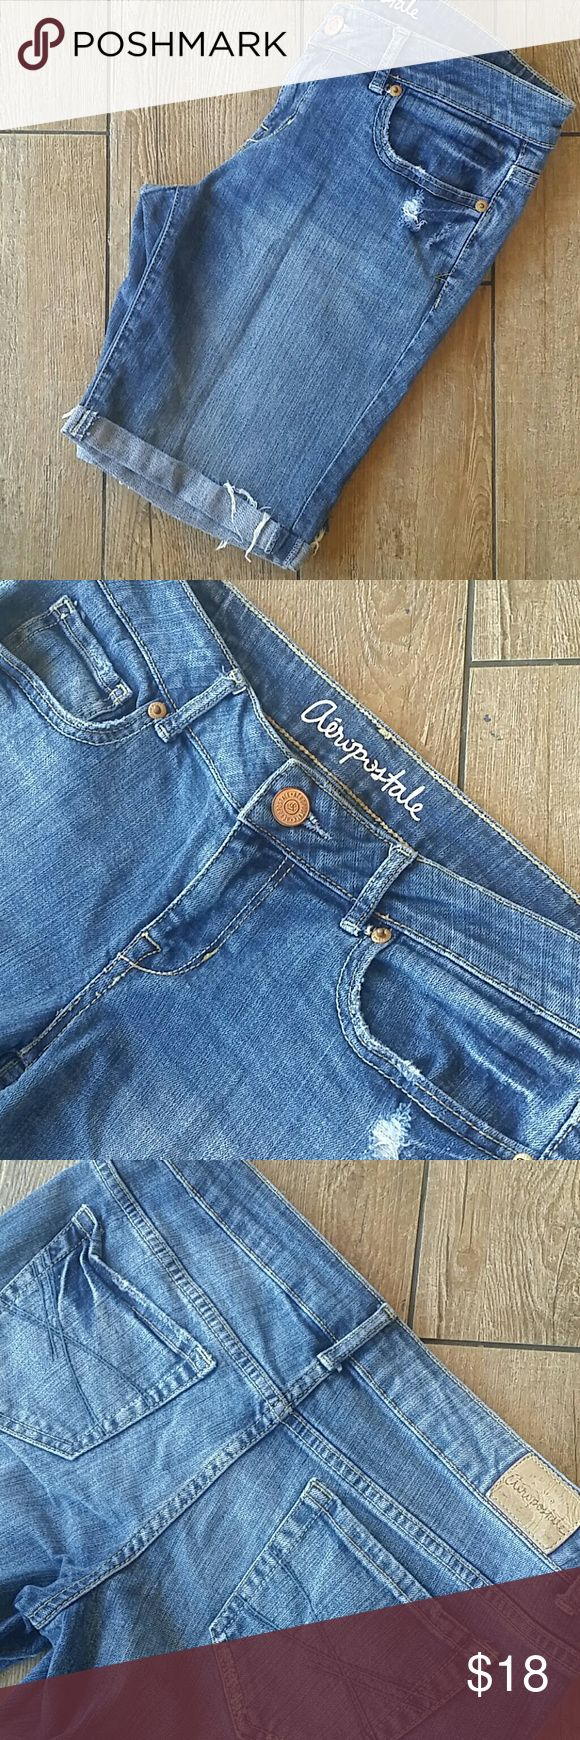 """AEROPOSTALE BERMUDA JEAN SHORT Medium rinse Distressed Bermuda short Sewn rolled up 8.5"""" inseam 15""""across top of waist 7.75"""" rise All holes/fraying by design No rips or stains Smoke free home Aeropostale Shorts Bermudas"""